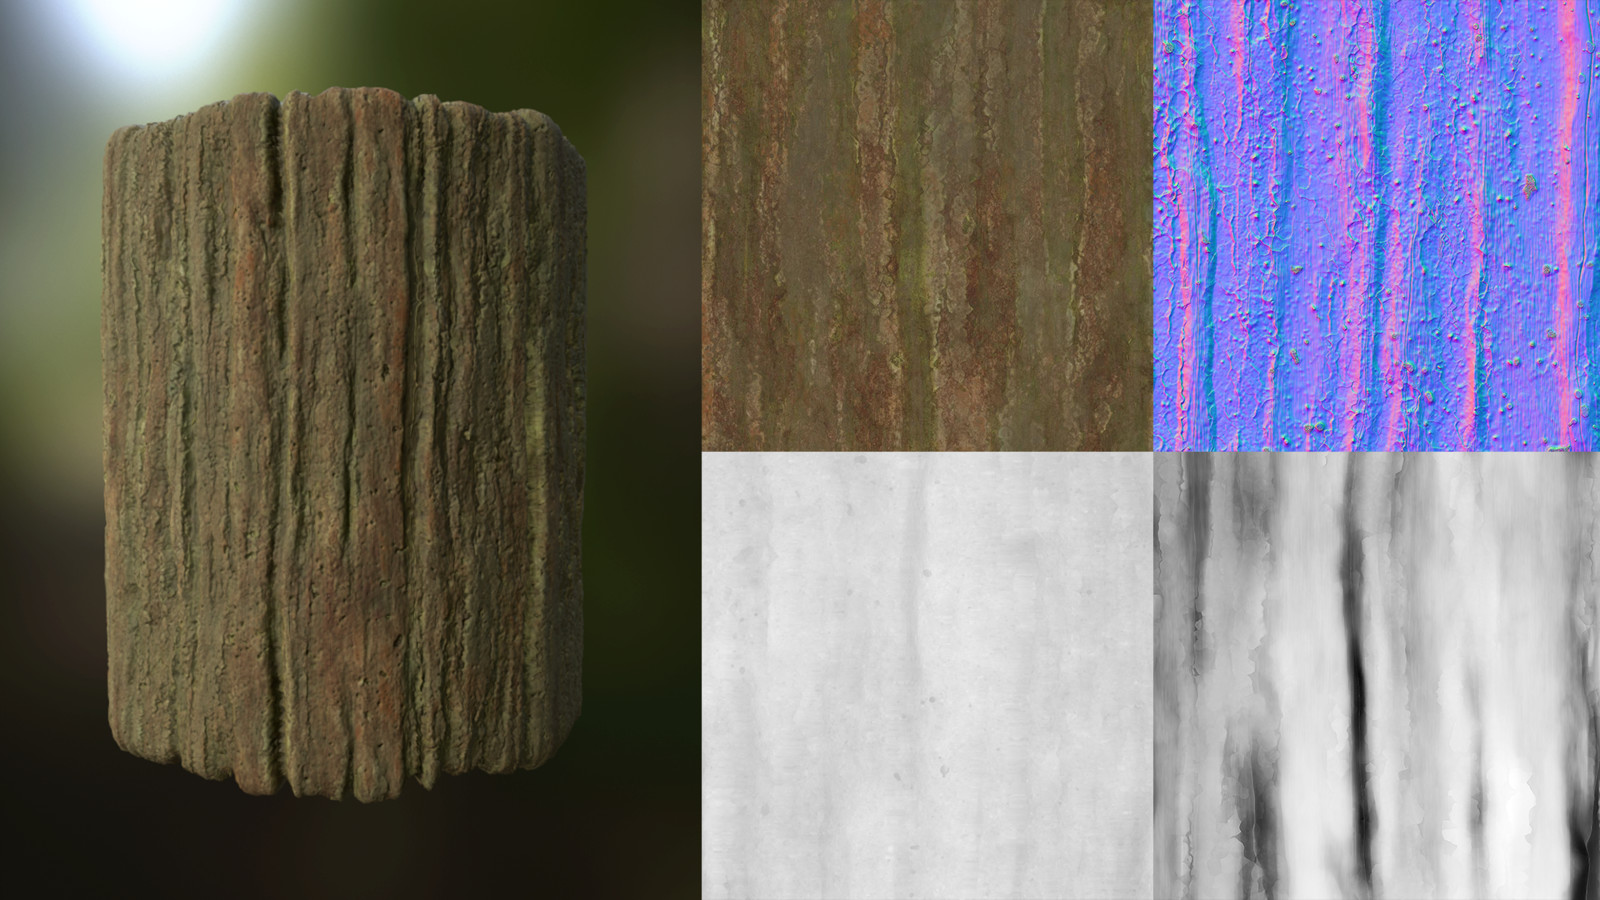 Bark material created in Substance Designer. Albedo, normal, roughness, height